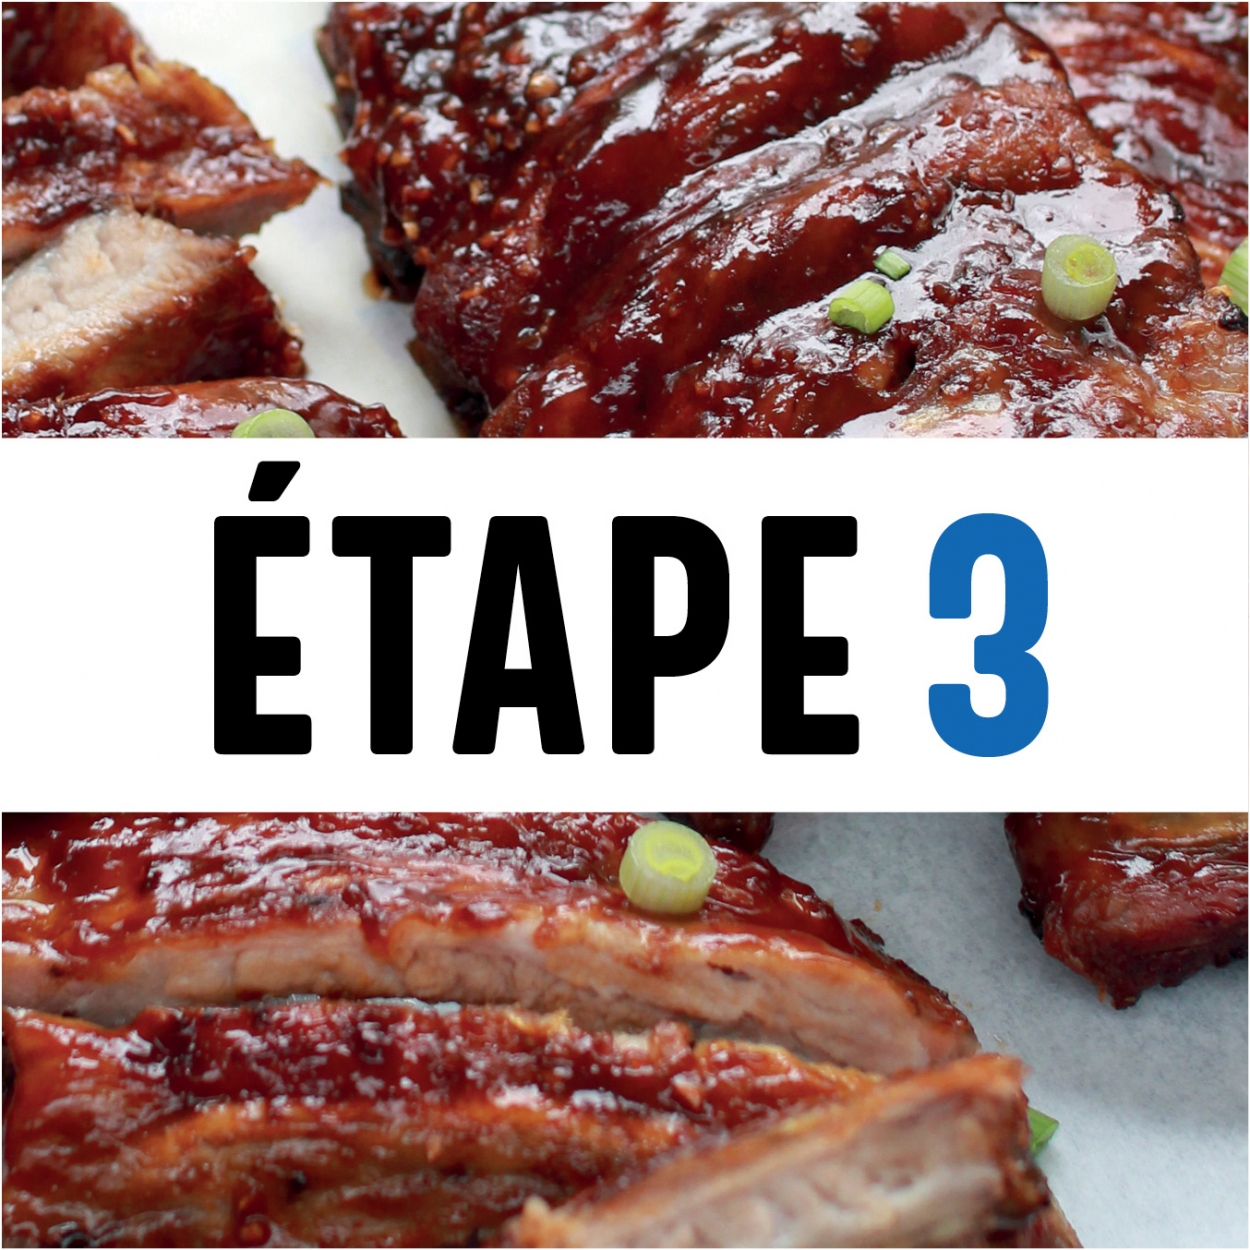 Slow cooking étape 3